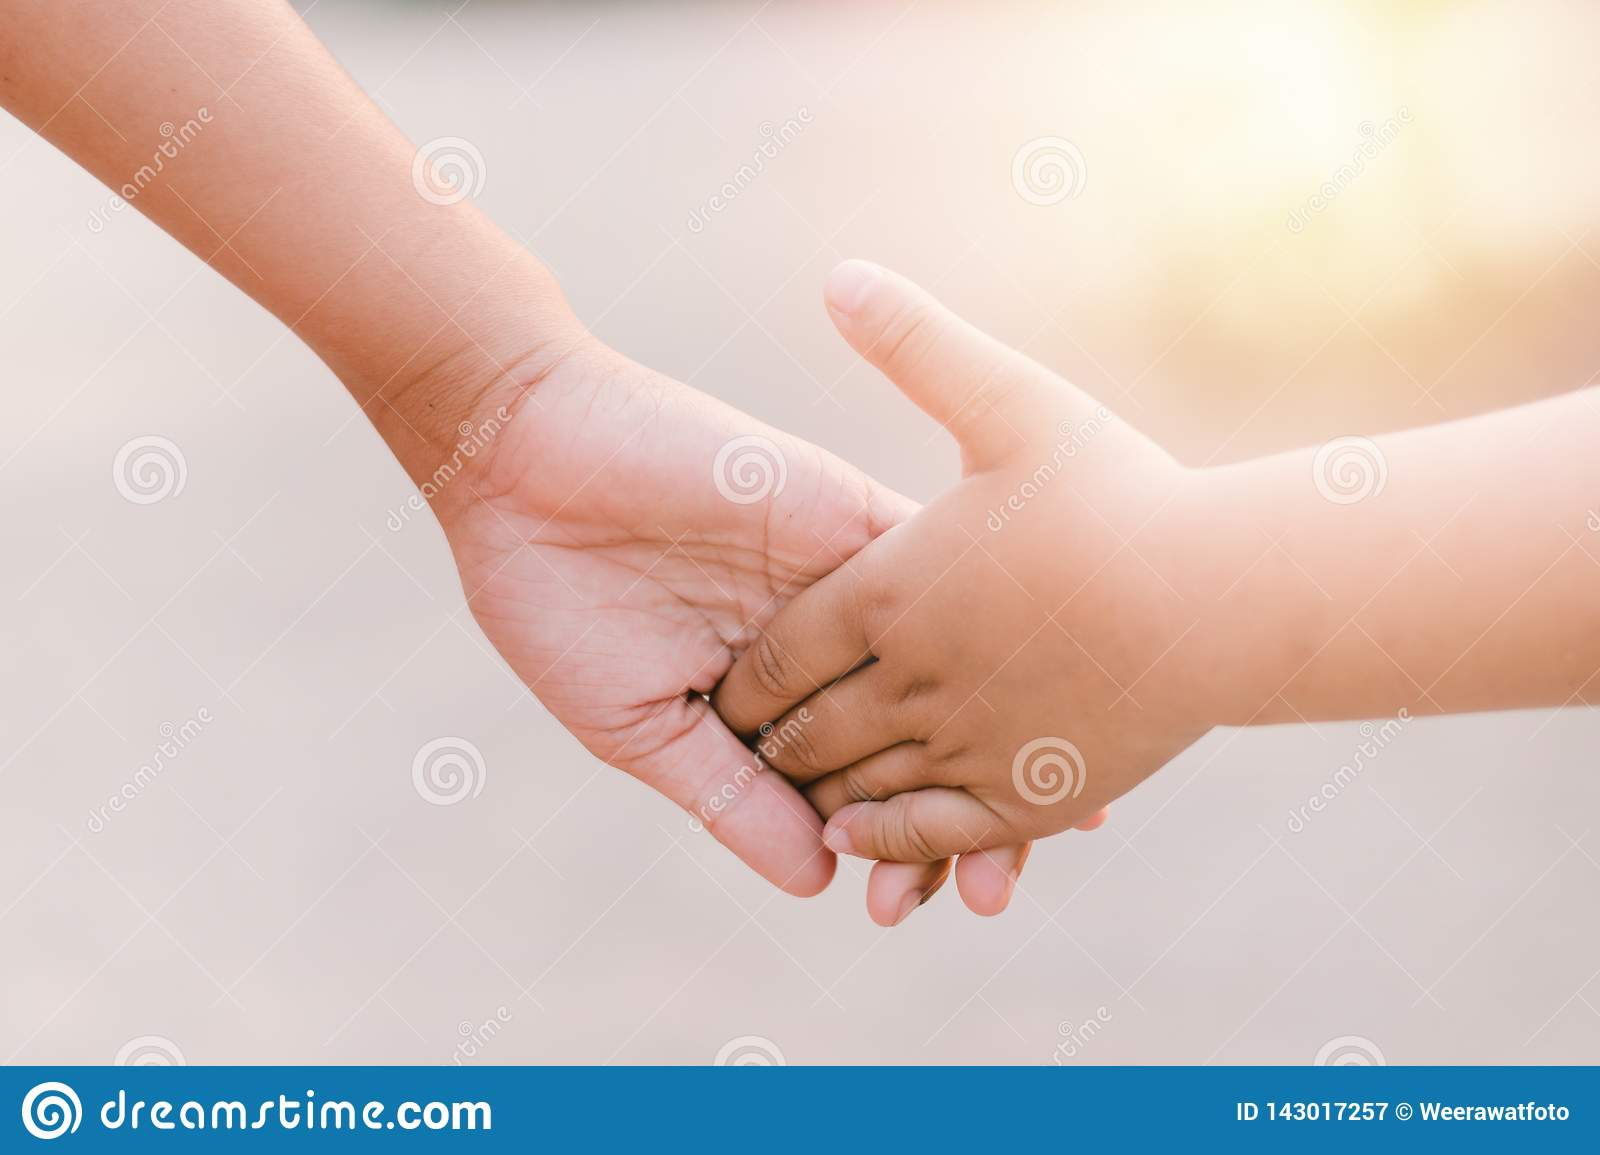 Kids holding hands while walking at sunset